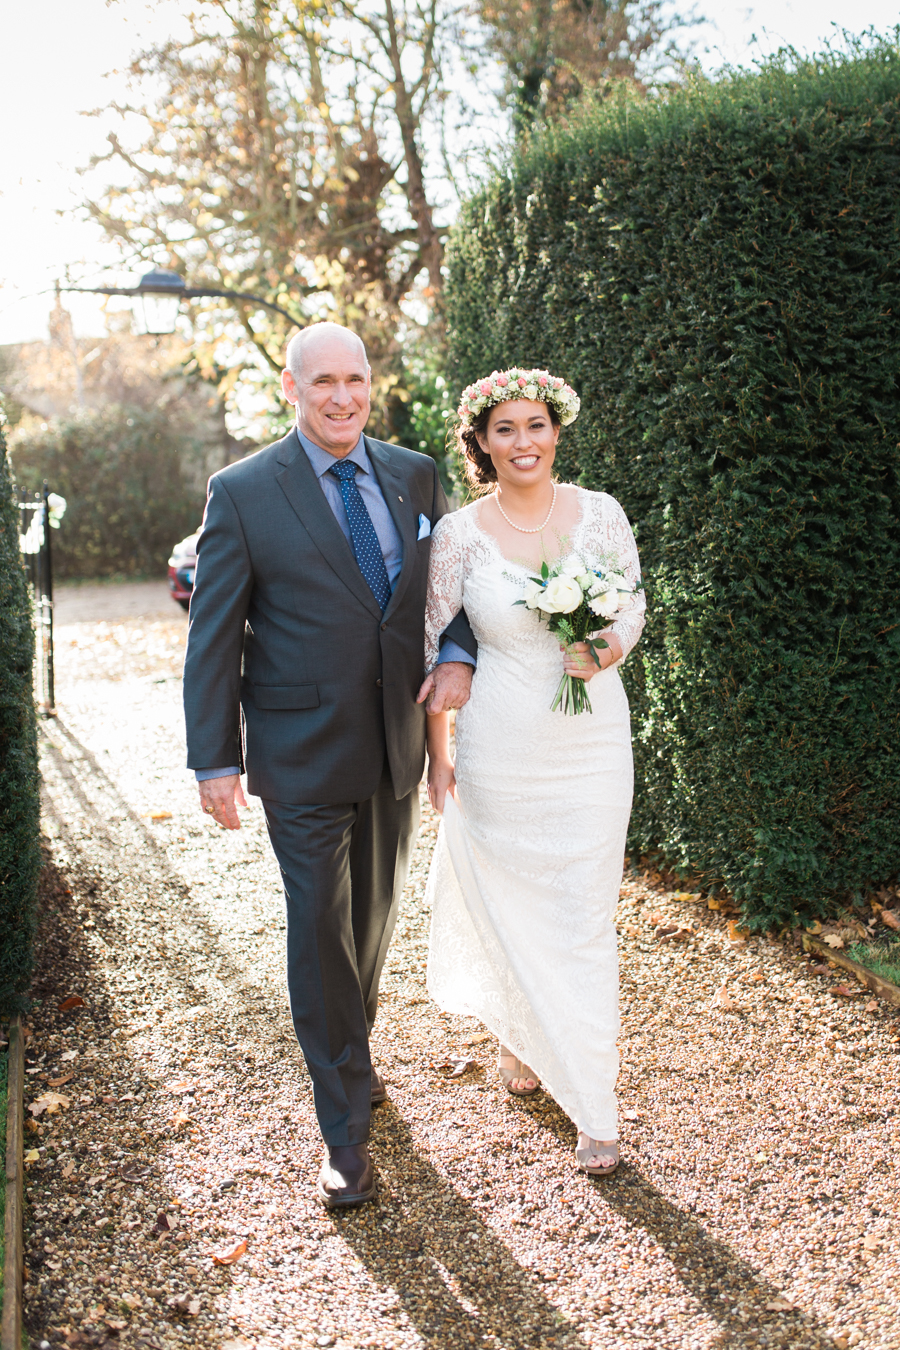 mersea-island-essex-wedding-photos-gemma-giorgio-photography-36